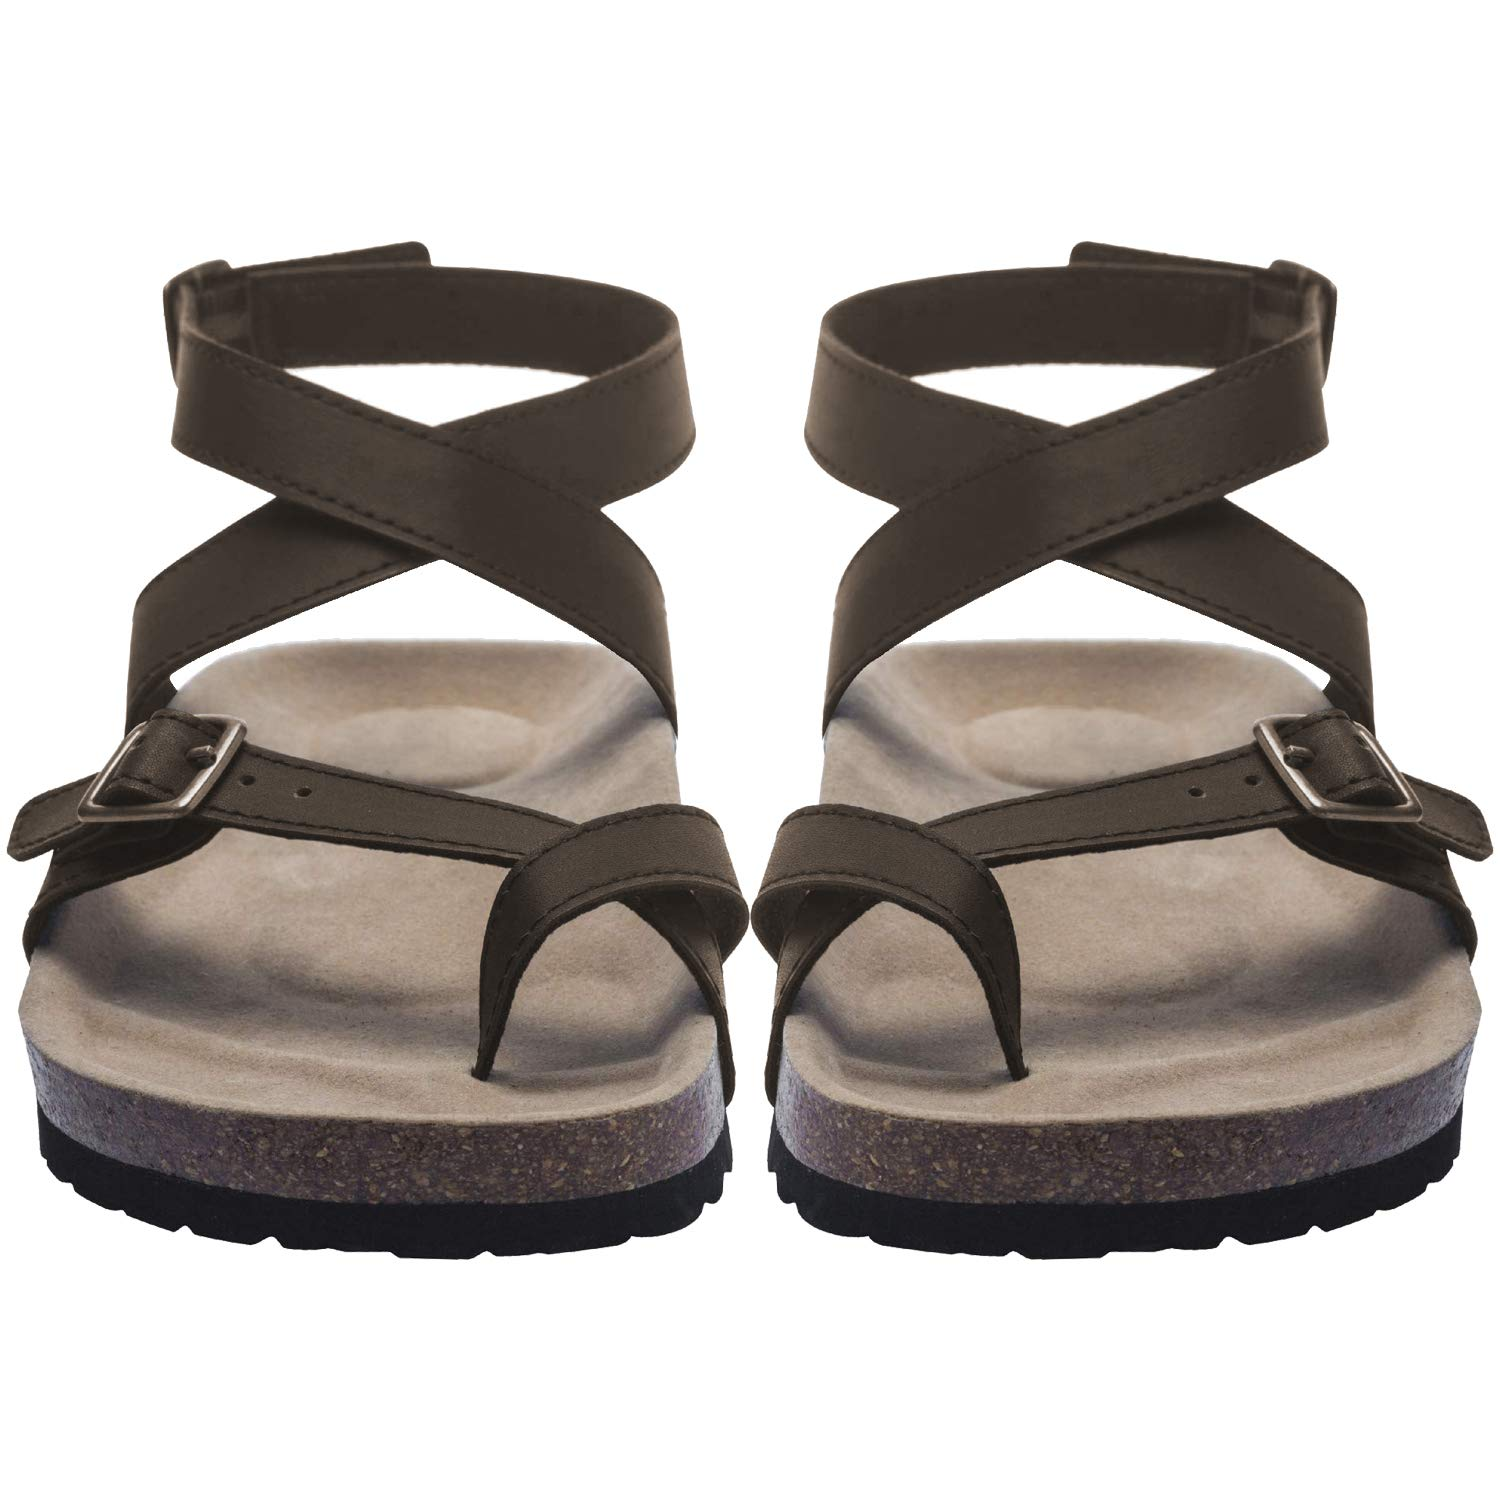 2e3371251 Amazon.com | Women Flat Sandals Buckle Strappy Sandals Cross Toe Ankle Strap  Cork Sole Leather Flat Mayari Sandals (US 8.0-9.8in(Foot Length)-Tag 40, ...